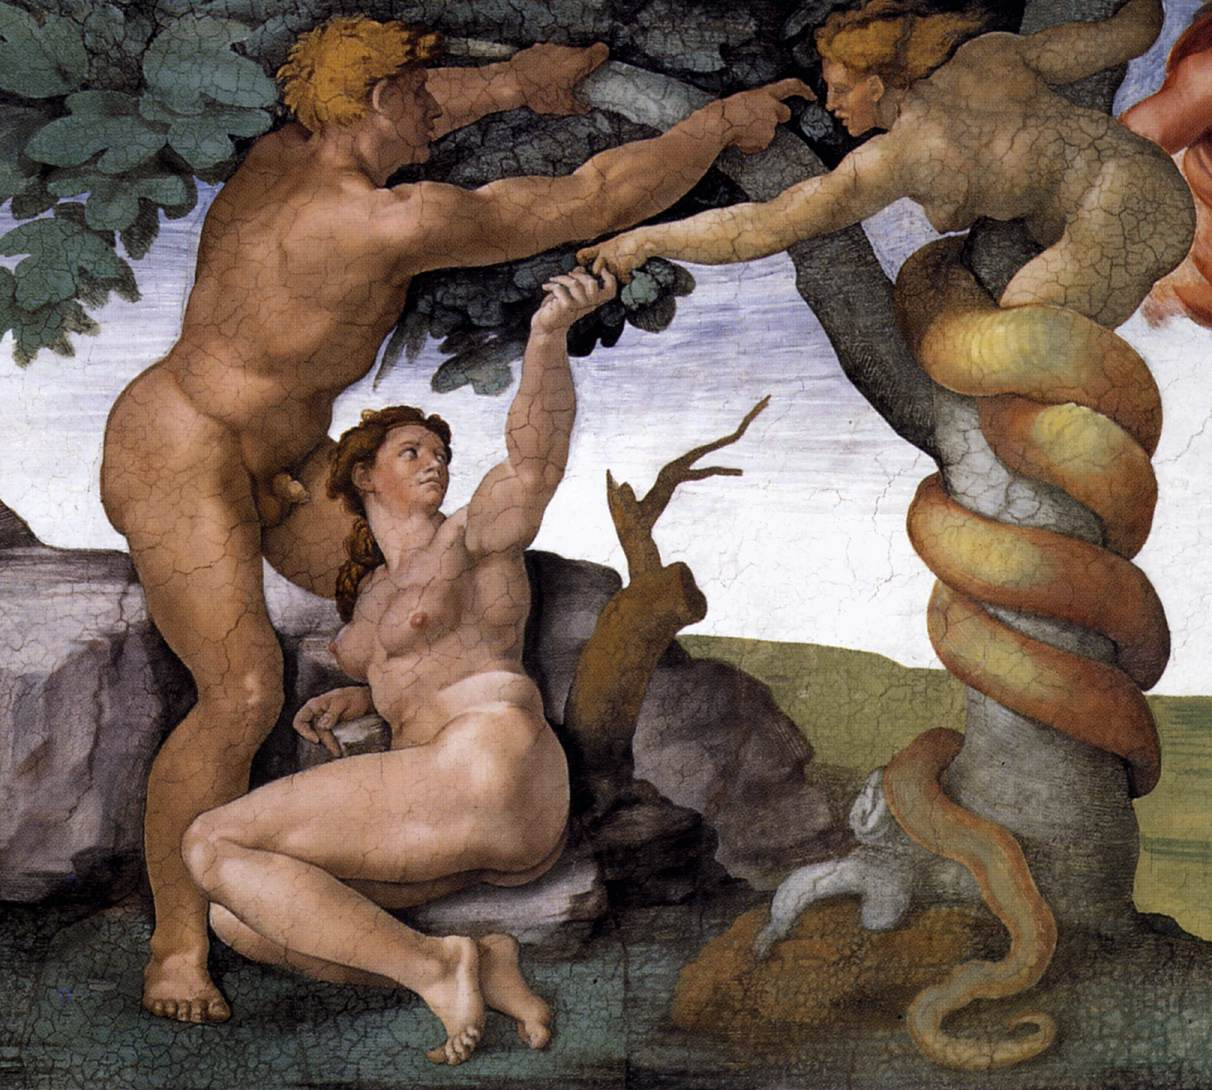 Fall and Expulsion from the Garden of Eden, by Michelangelo